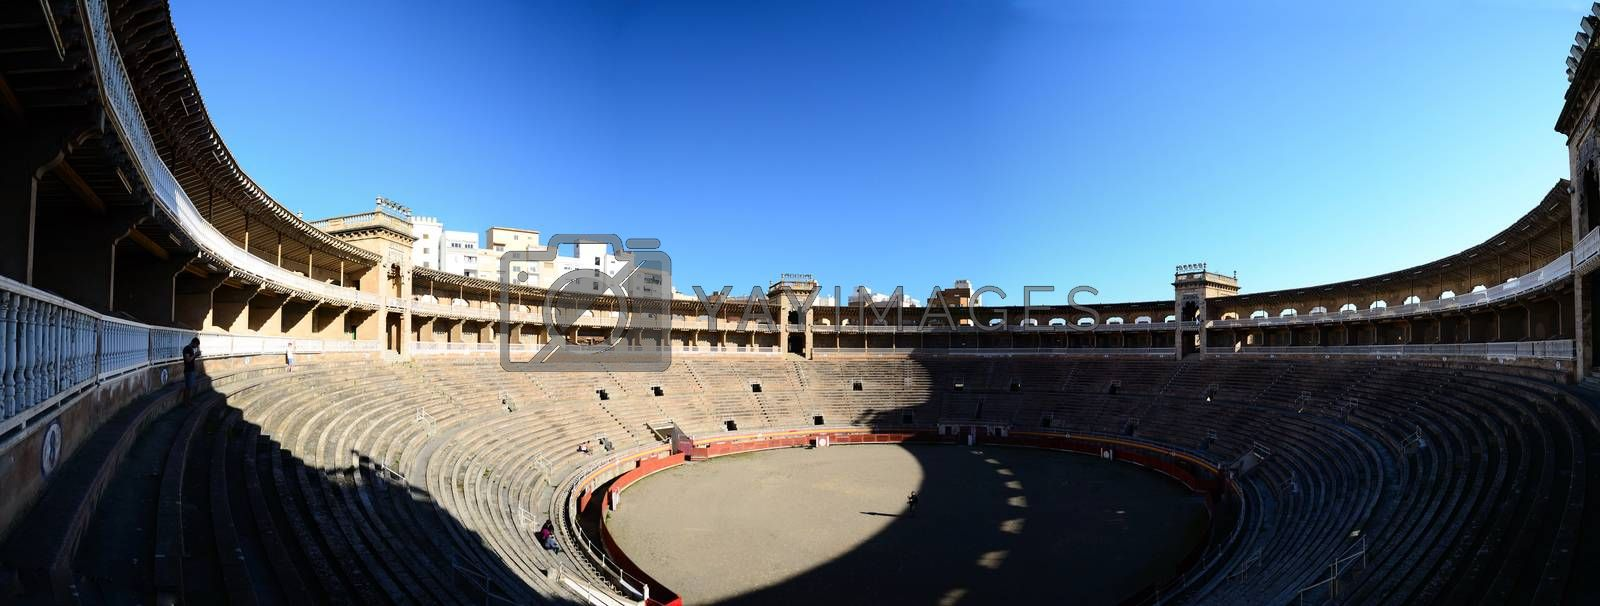 beautiful antique stadium in mallorca panorama view